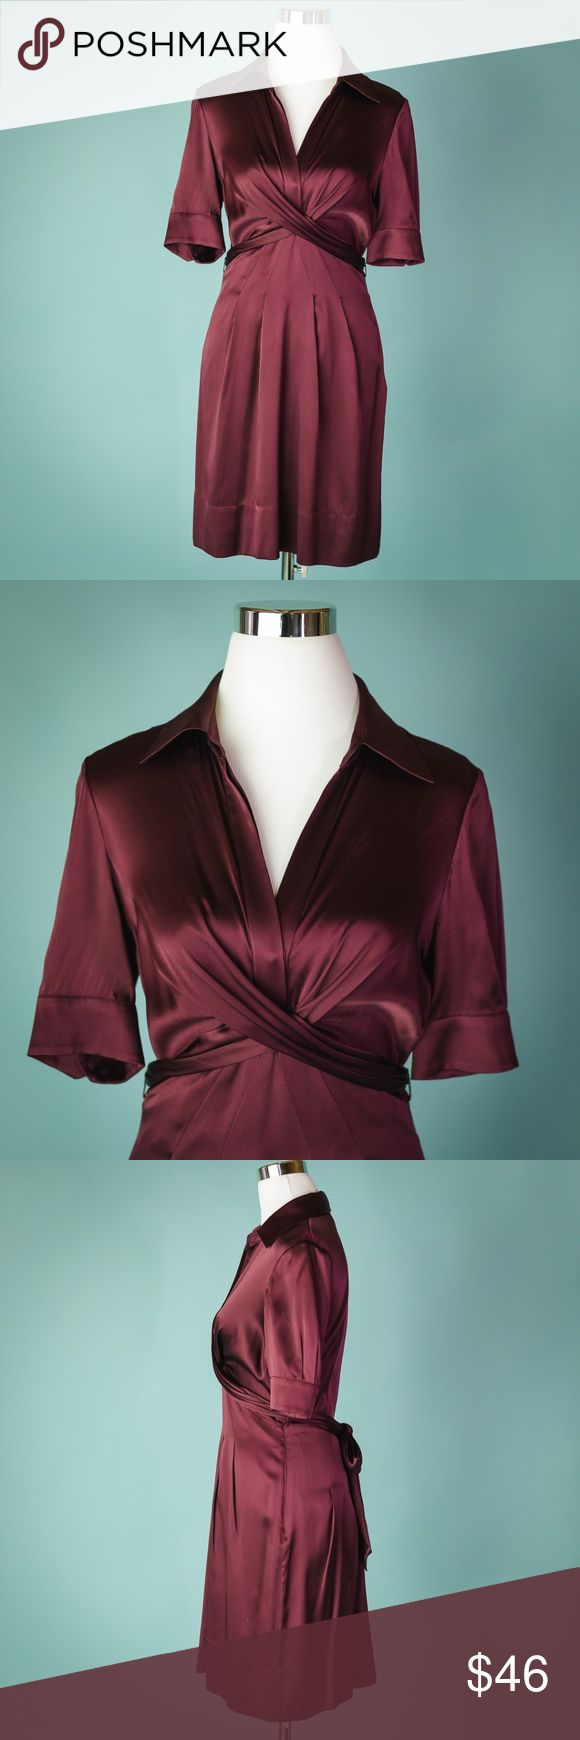 BCBG Max Azria Size 6 Burgundy Silk Dress BCBG Max Azria Size 6 Burgundy Silk Short Sleeve Cross Front Dress  Size 6 Body- 95% silk, 5% spandex Lining- 97% polyester, 3% spandex No holes, tears or stains.  Measurements are approximate:  Arm pit to arm pit- 17 inches  Shoulder to hem- 38 inches   #826 BCBGMaxAzria Dresses